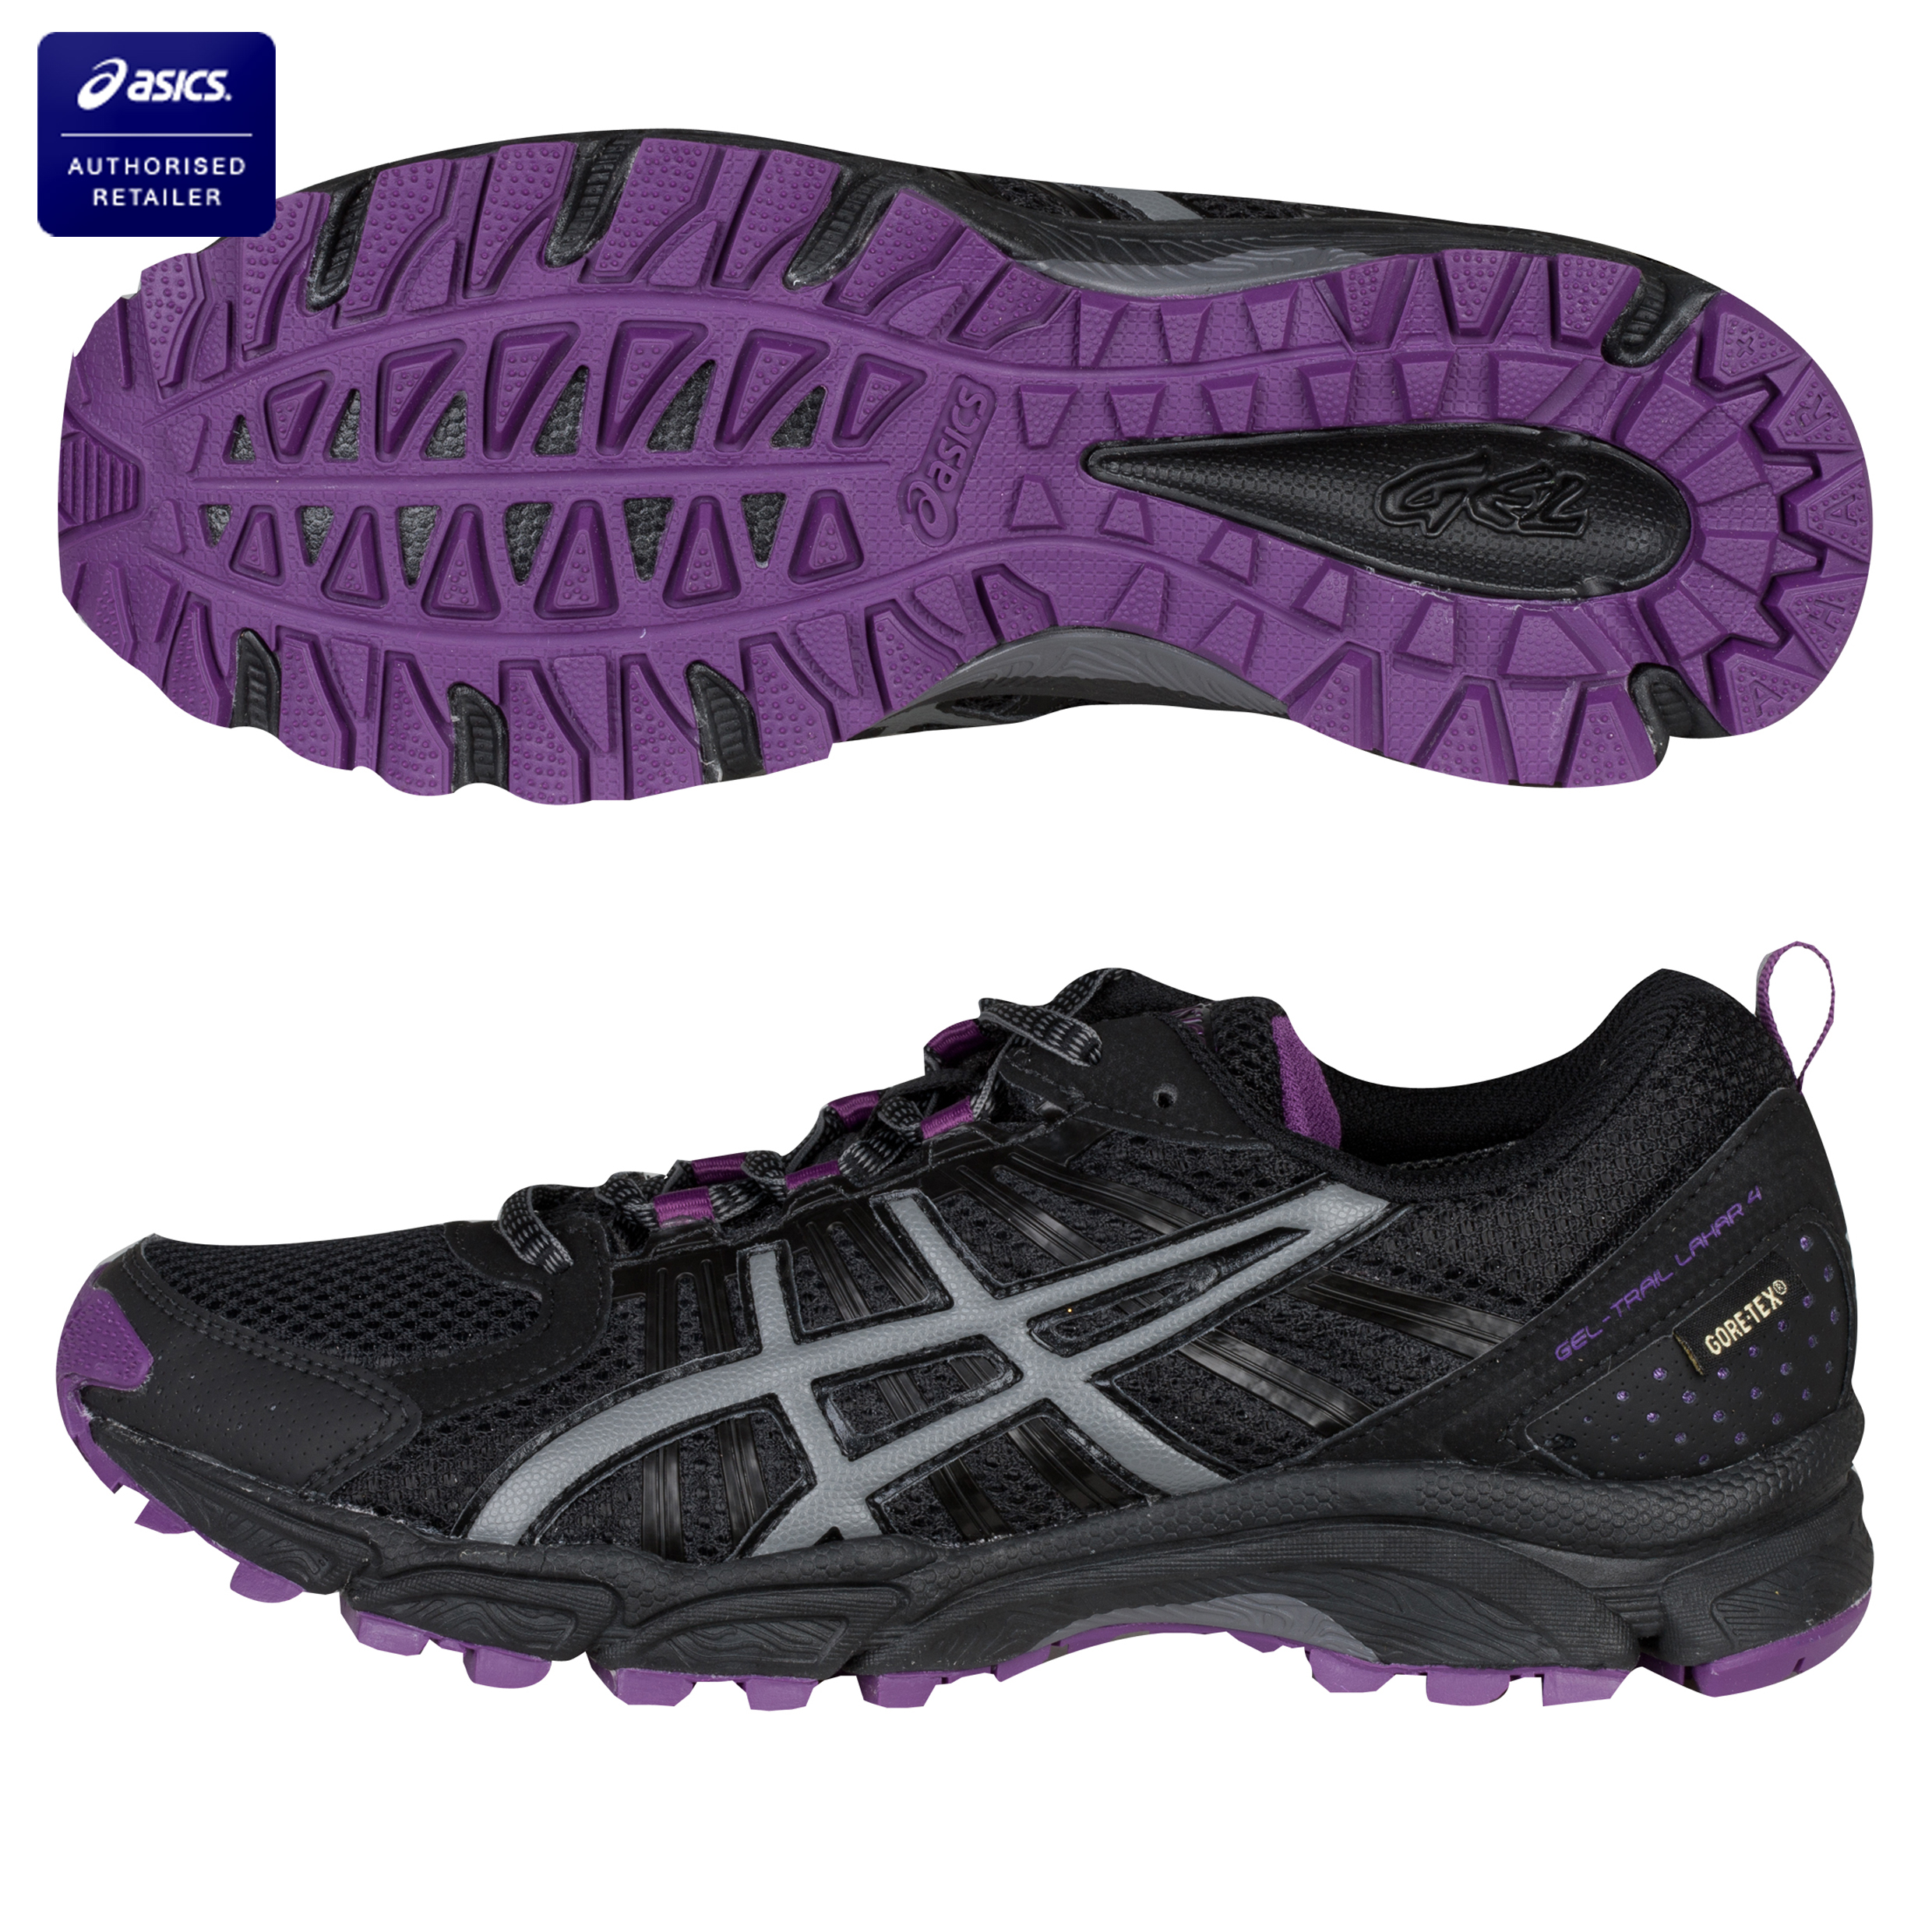 Asics Gel-Trail Lahar 4 G-TX Trainers - Black/Titanium/Purple - Womens